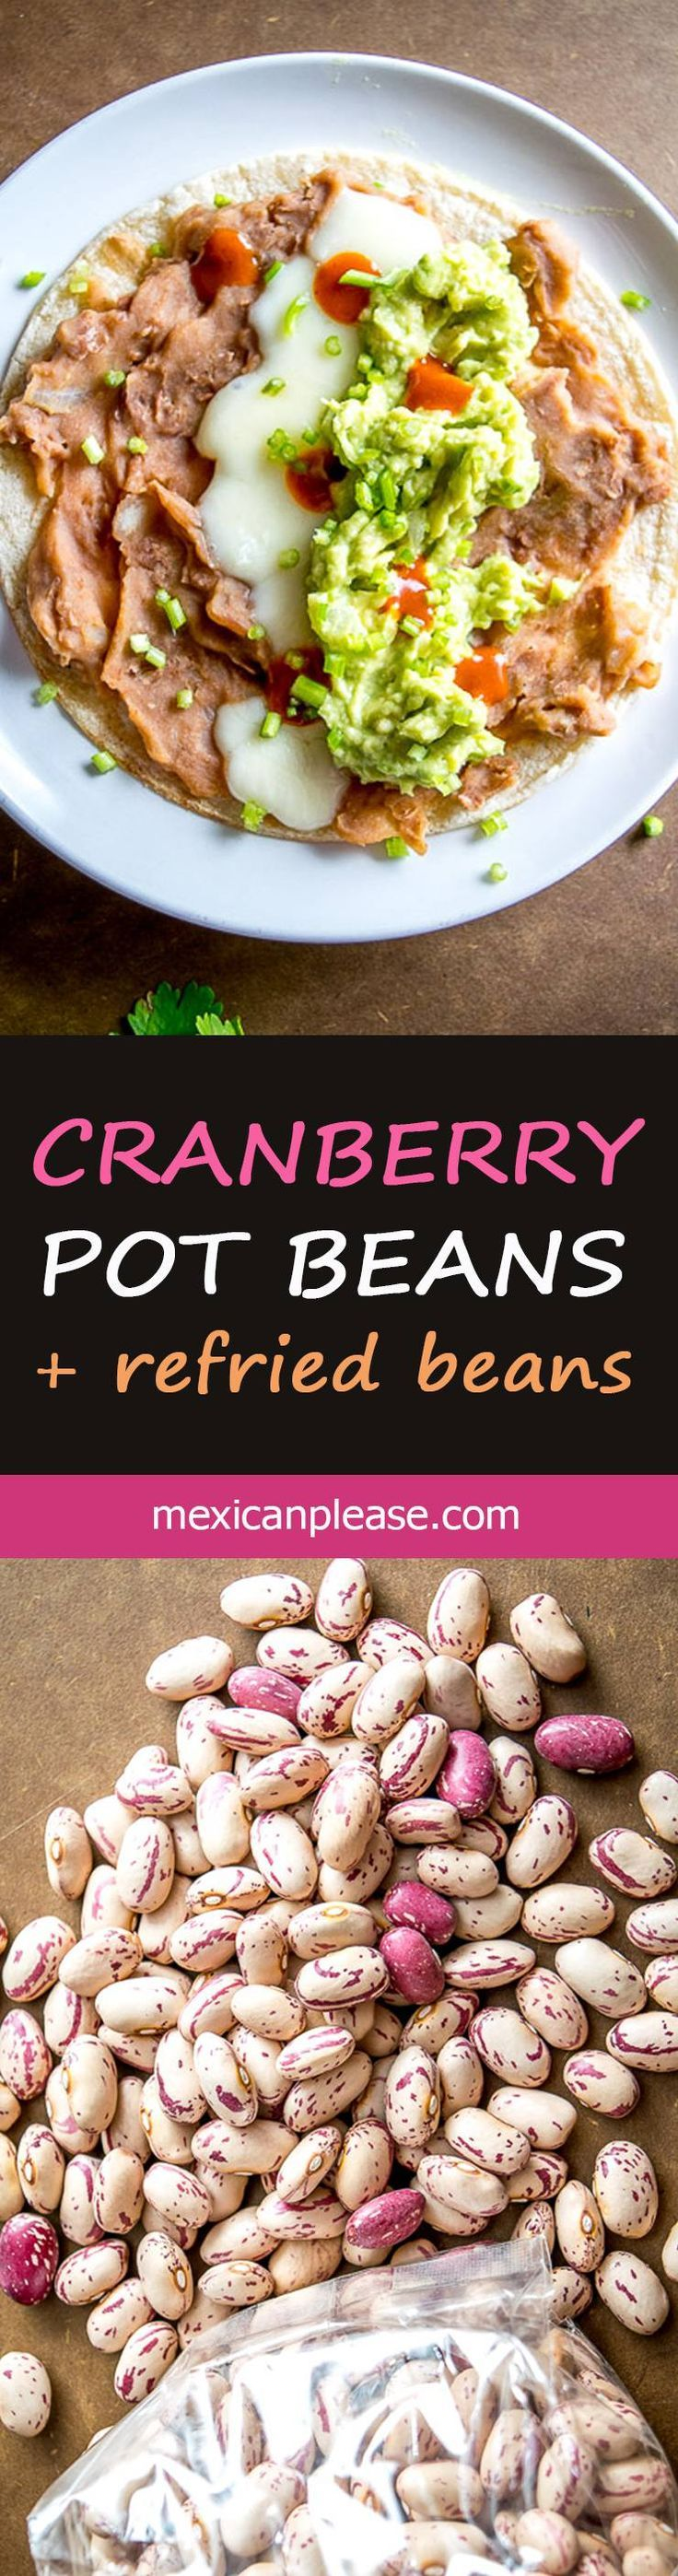 You can think of these Cranberry Beans as Pinto Beans Lite.   They have a similar flavor to pintos but are creamier and slightly less 'beany'.  A great option for refried beans!  http://mexicanplease.com